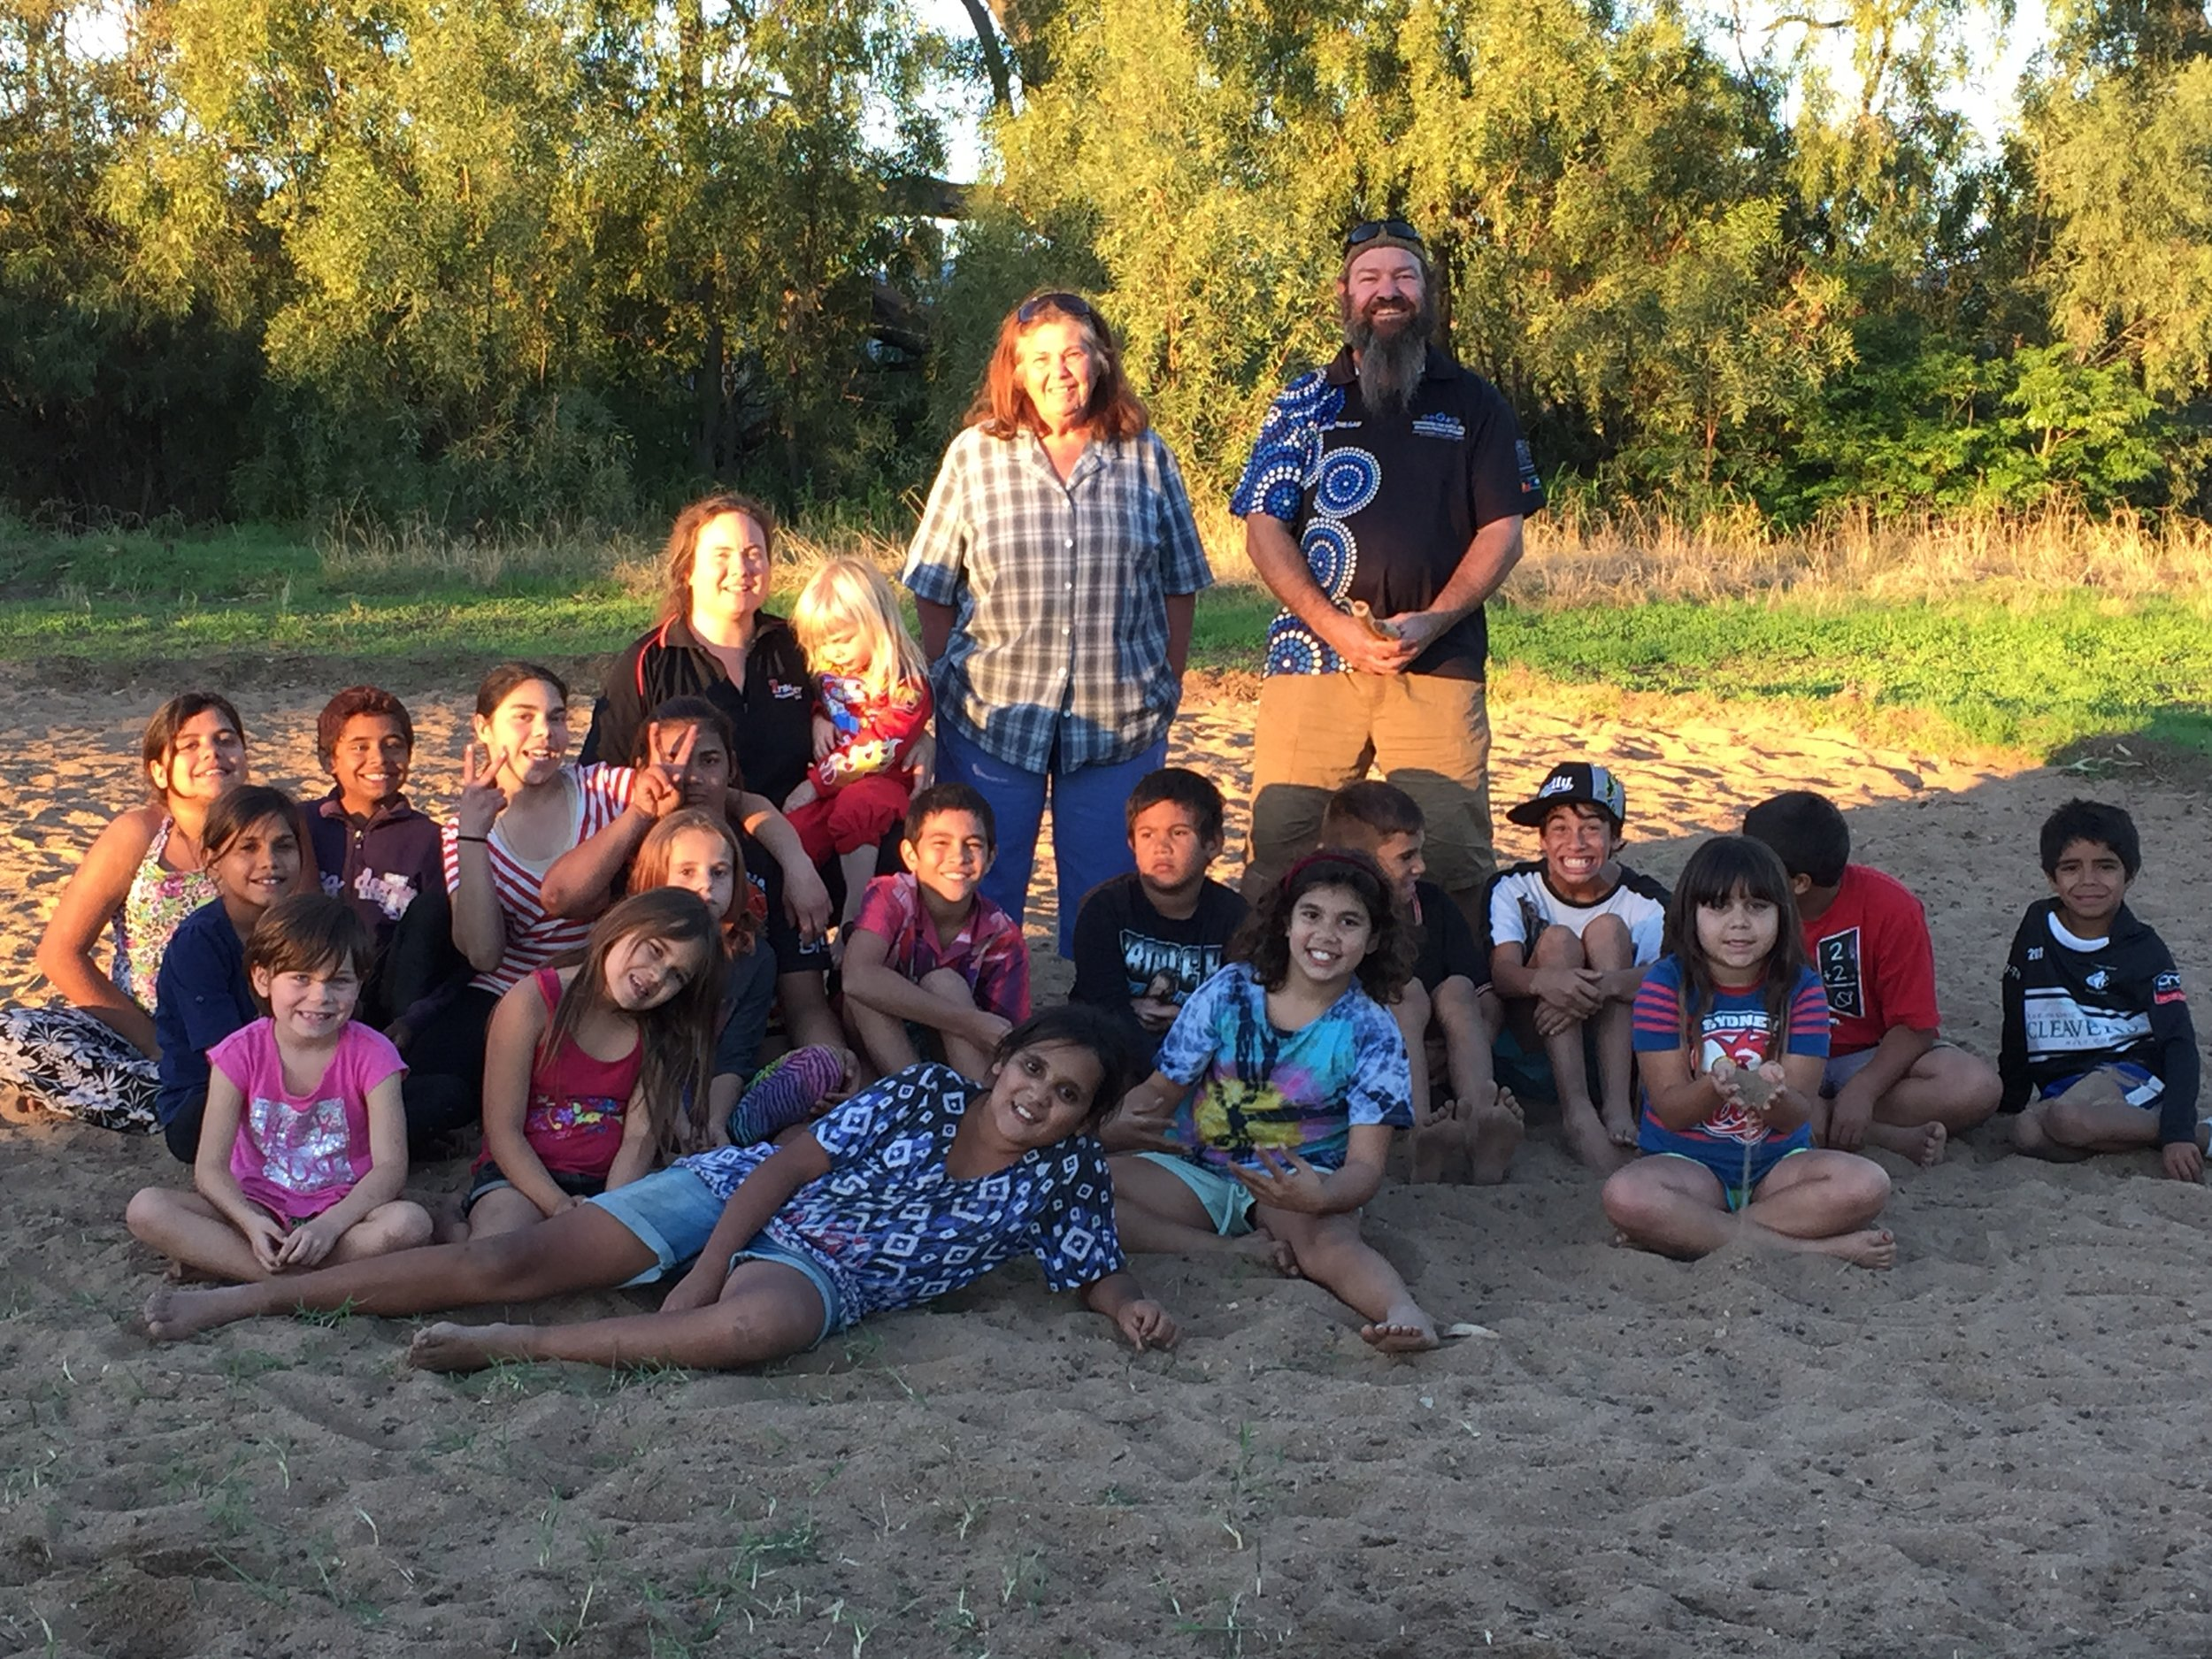 Milan Dhiiyaan with local Coonamble Elder and children participating in a local Corroborree (ceremony and dance).